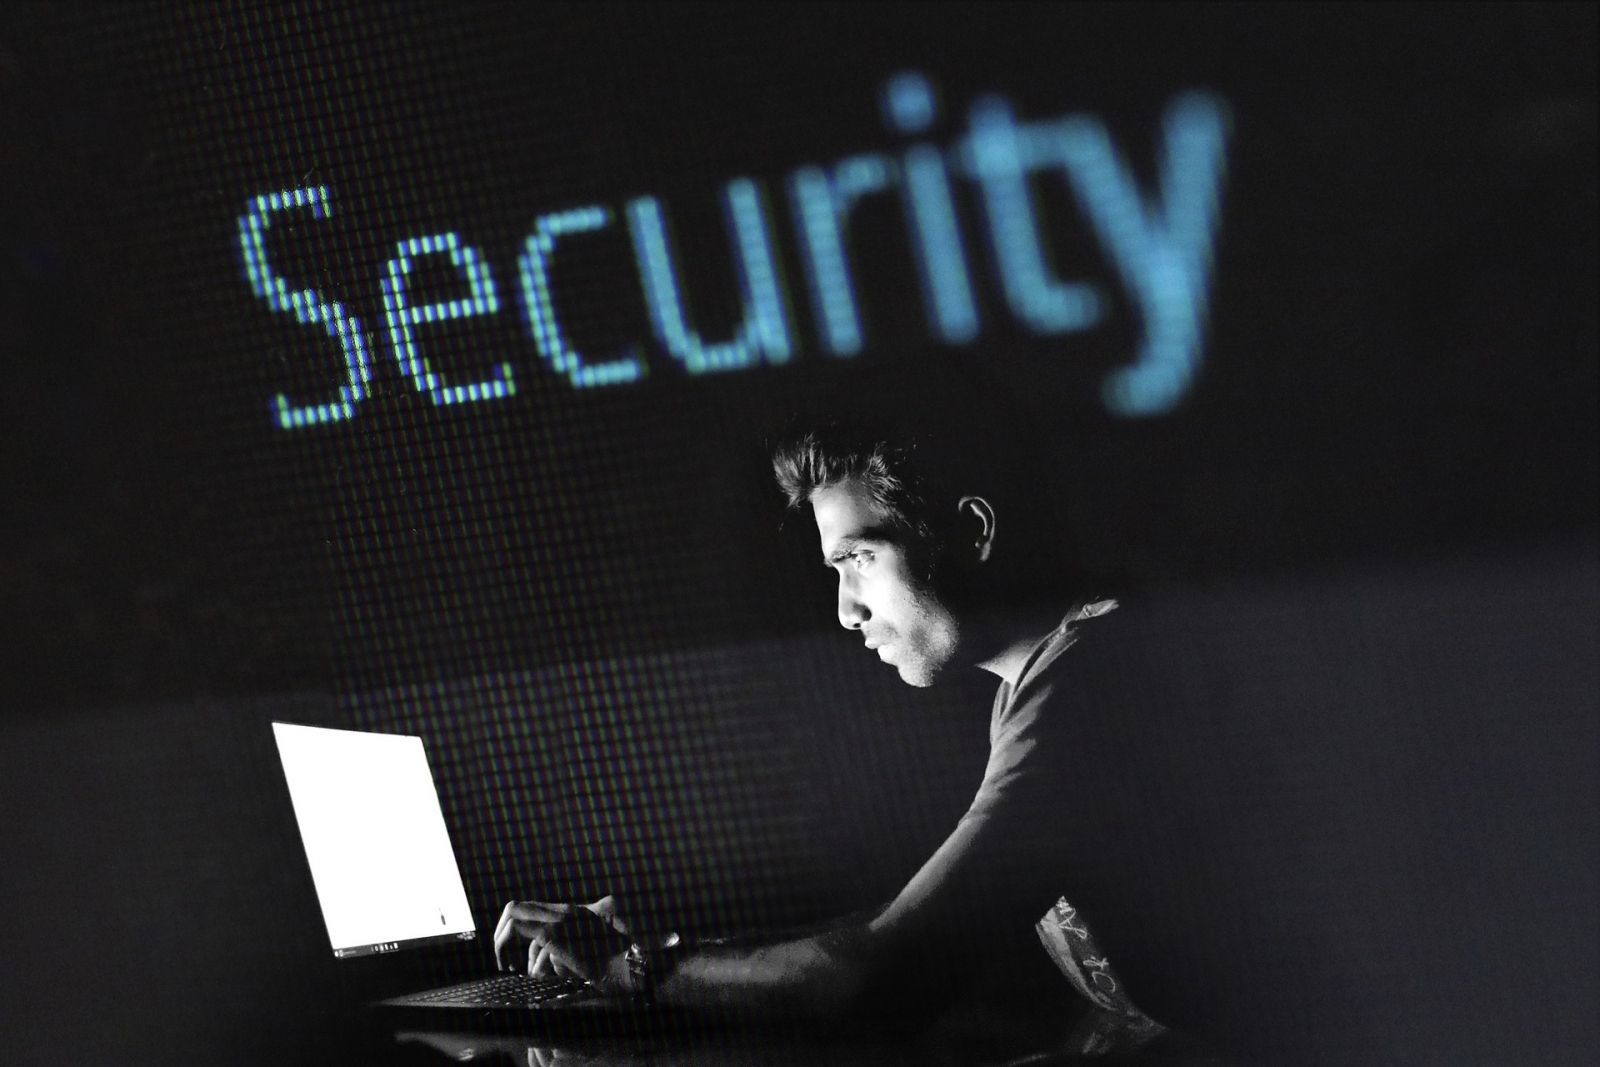 Cybersecurity stock image